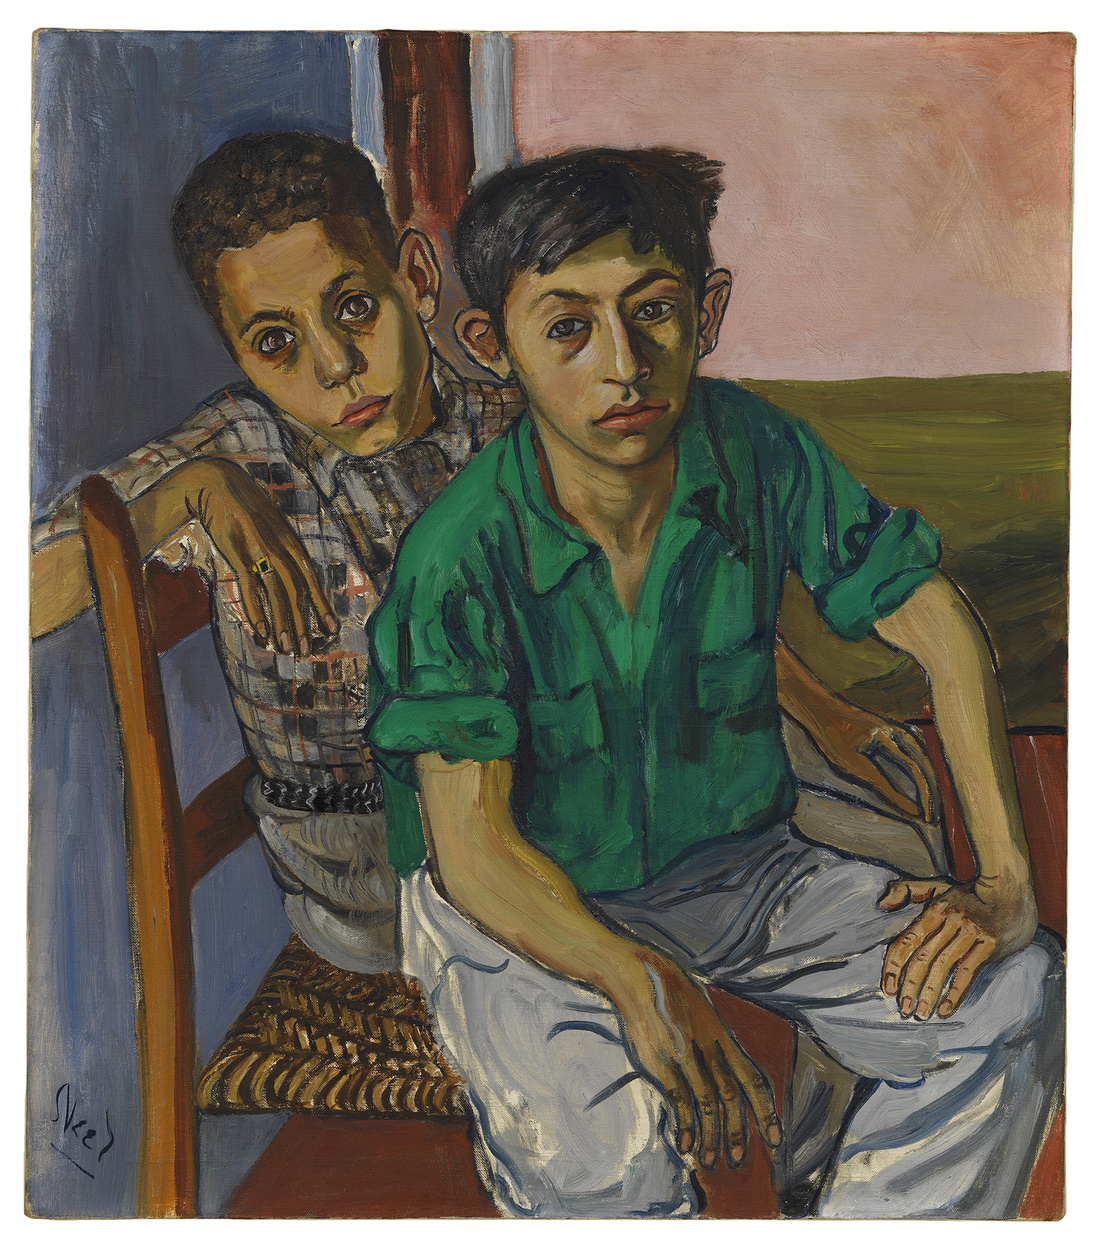 Alice Neel, Two Puerto Rican Boys, 1956. Jeff and Mei Sze Greene Collection. © The Estate of Alice Neel. Courtesy David Zwirner, New York/London and Victoria Miro, London.